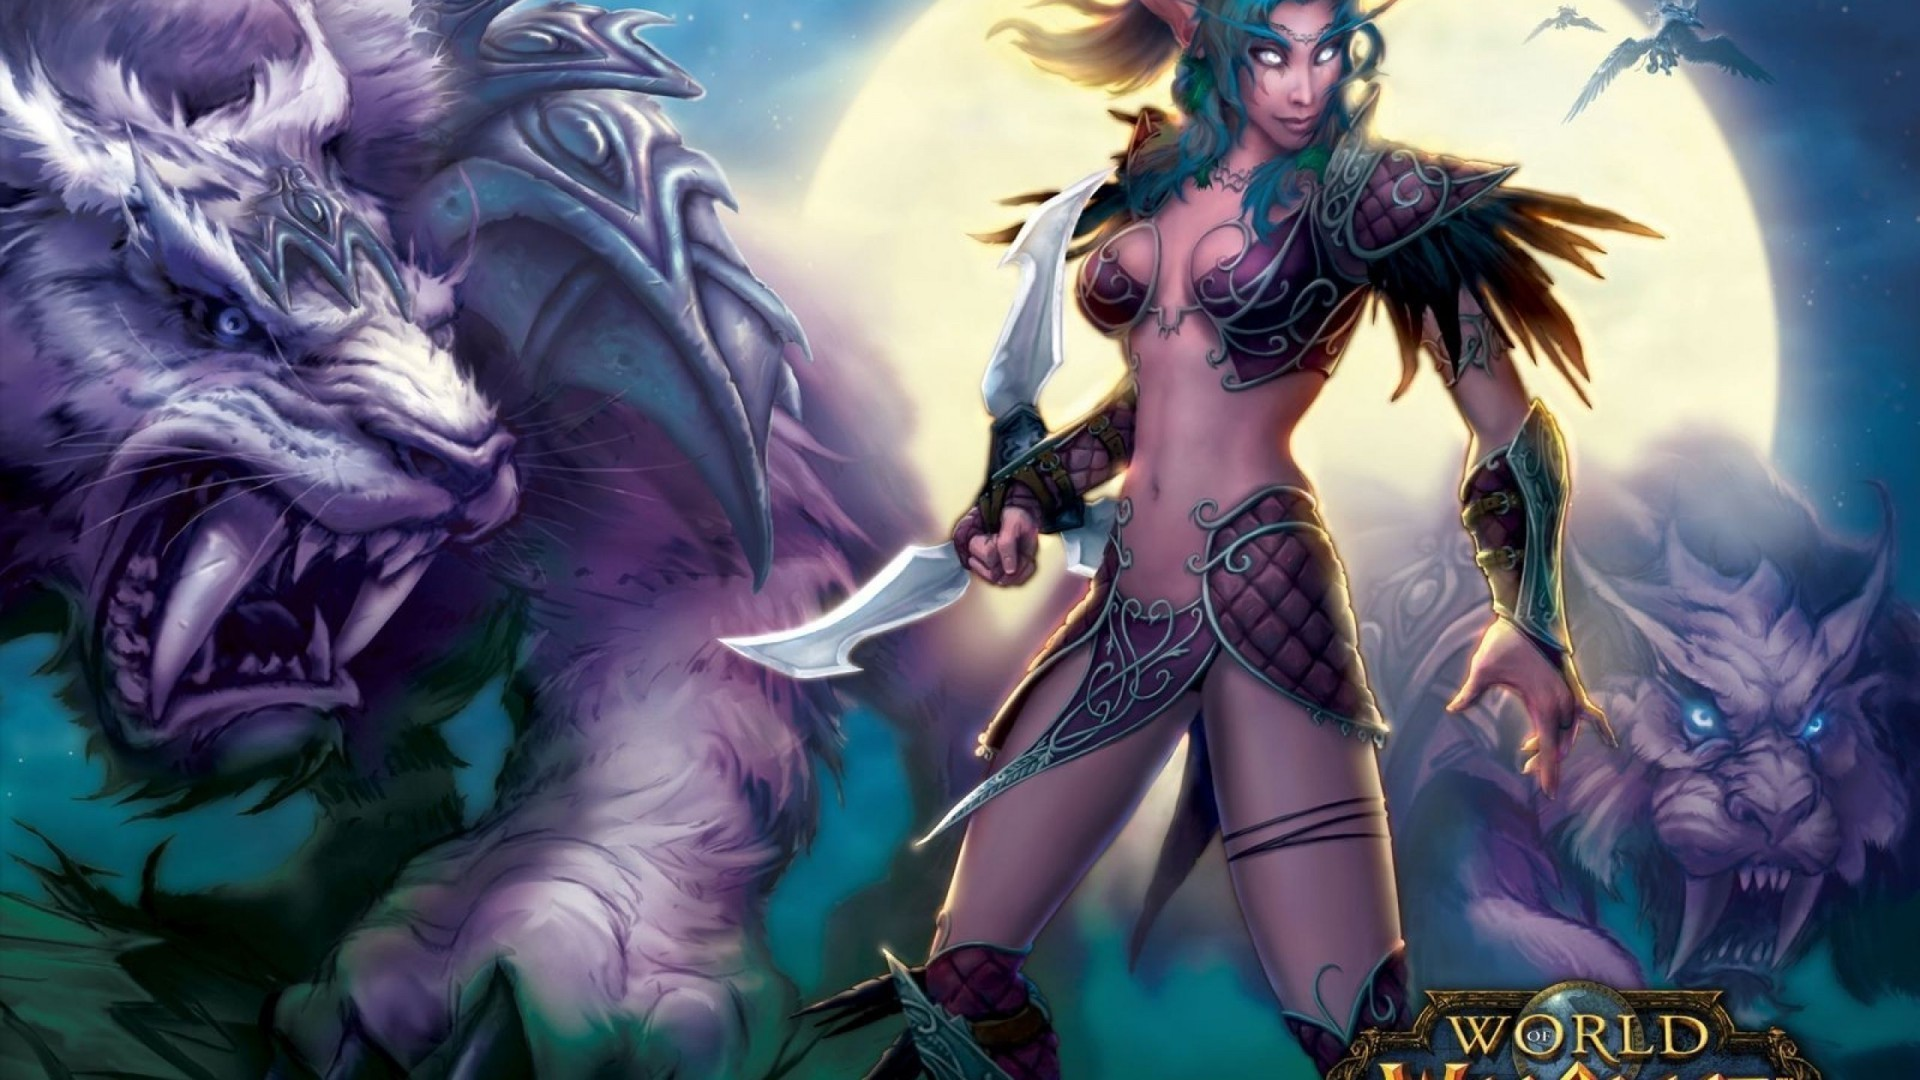 Res: 1920x1080,  Awesome World of Warcraft Game Wallpaper